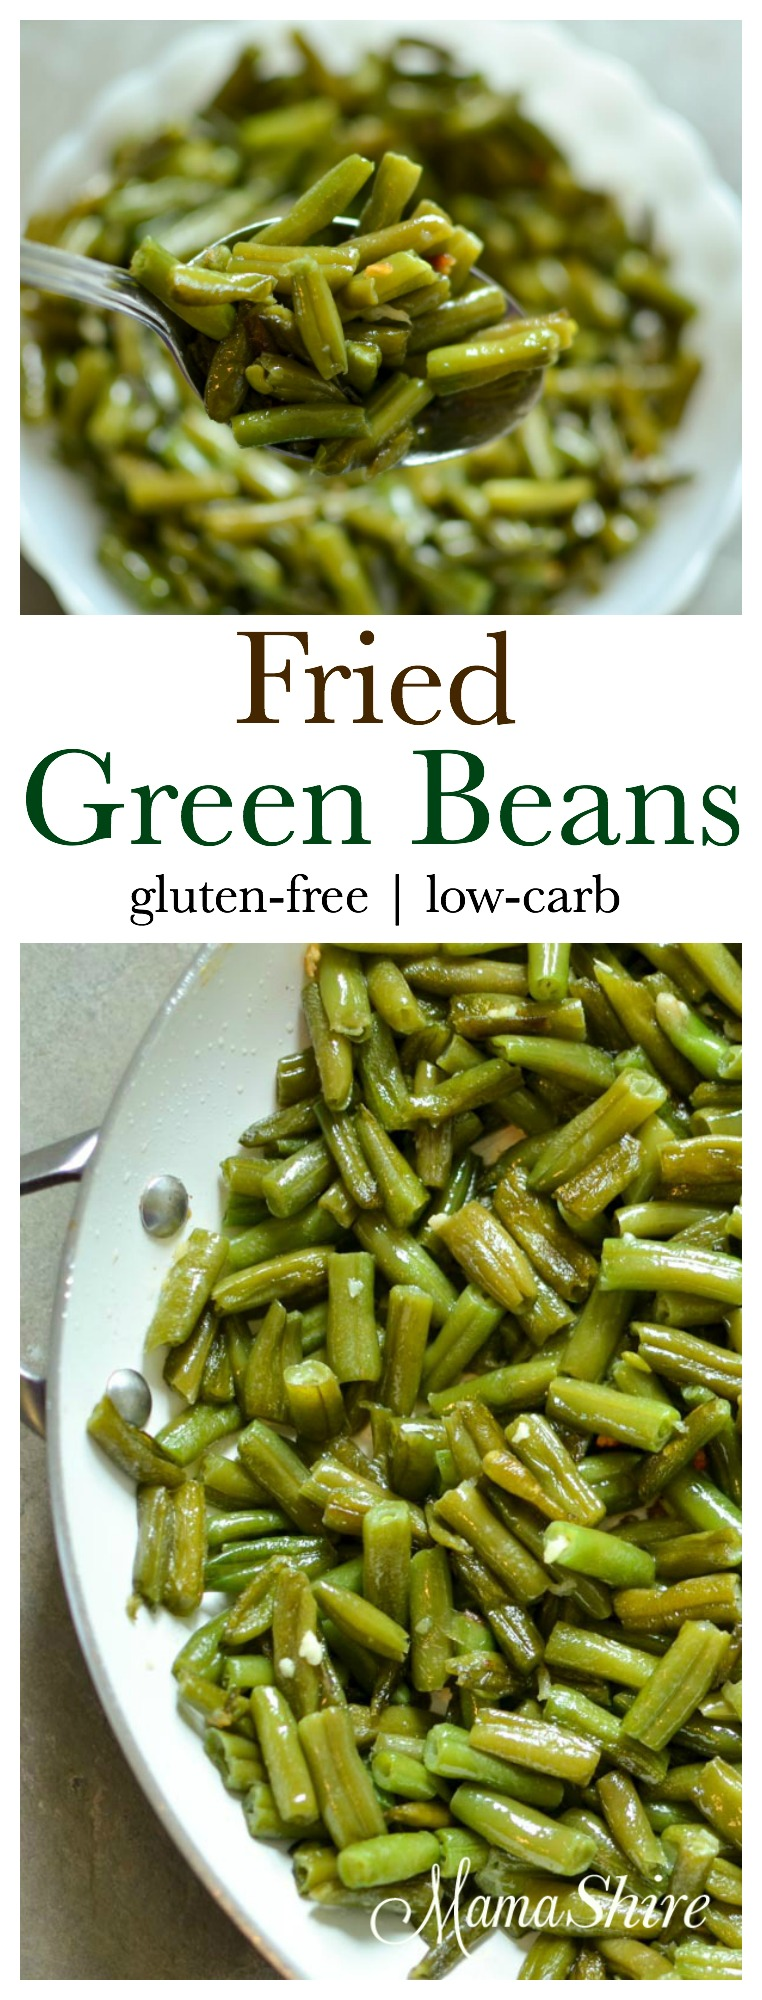 Fried Green Beans | gluten-free, low-carb